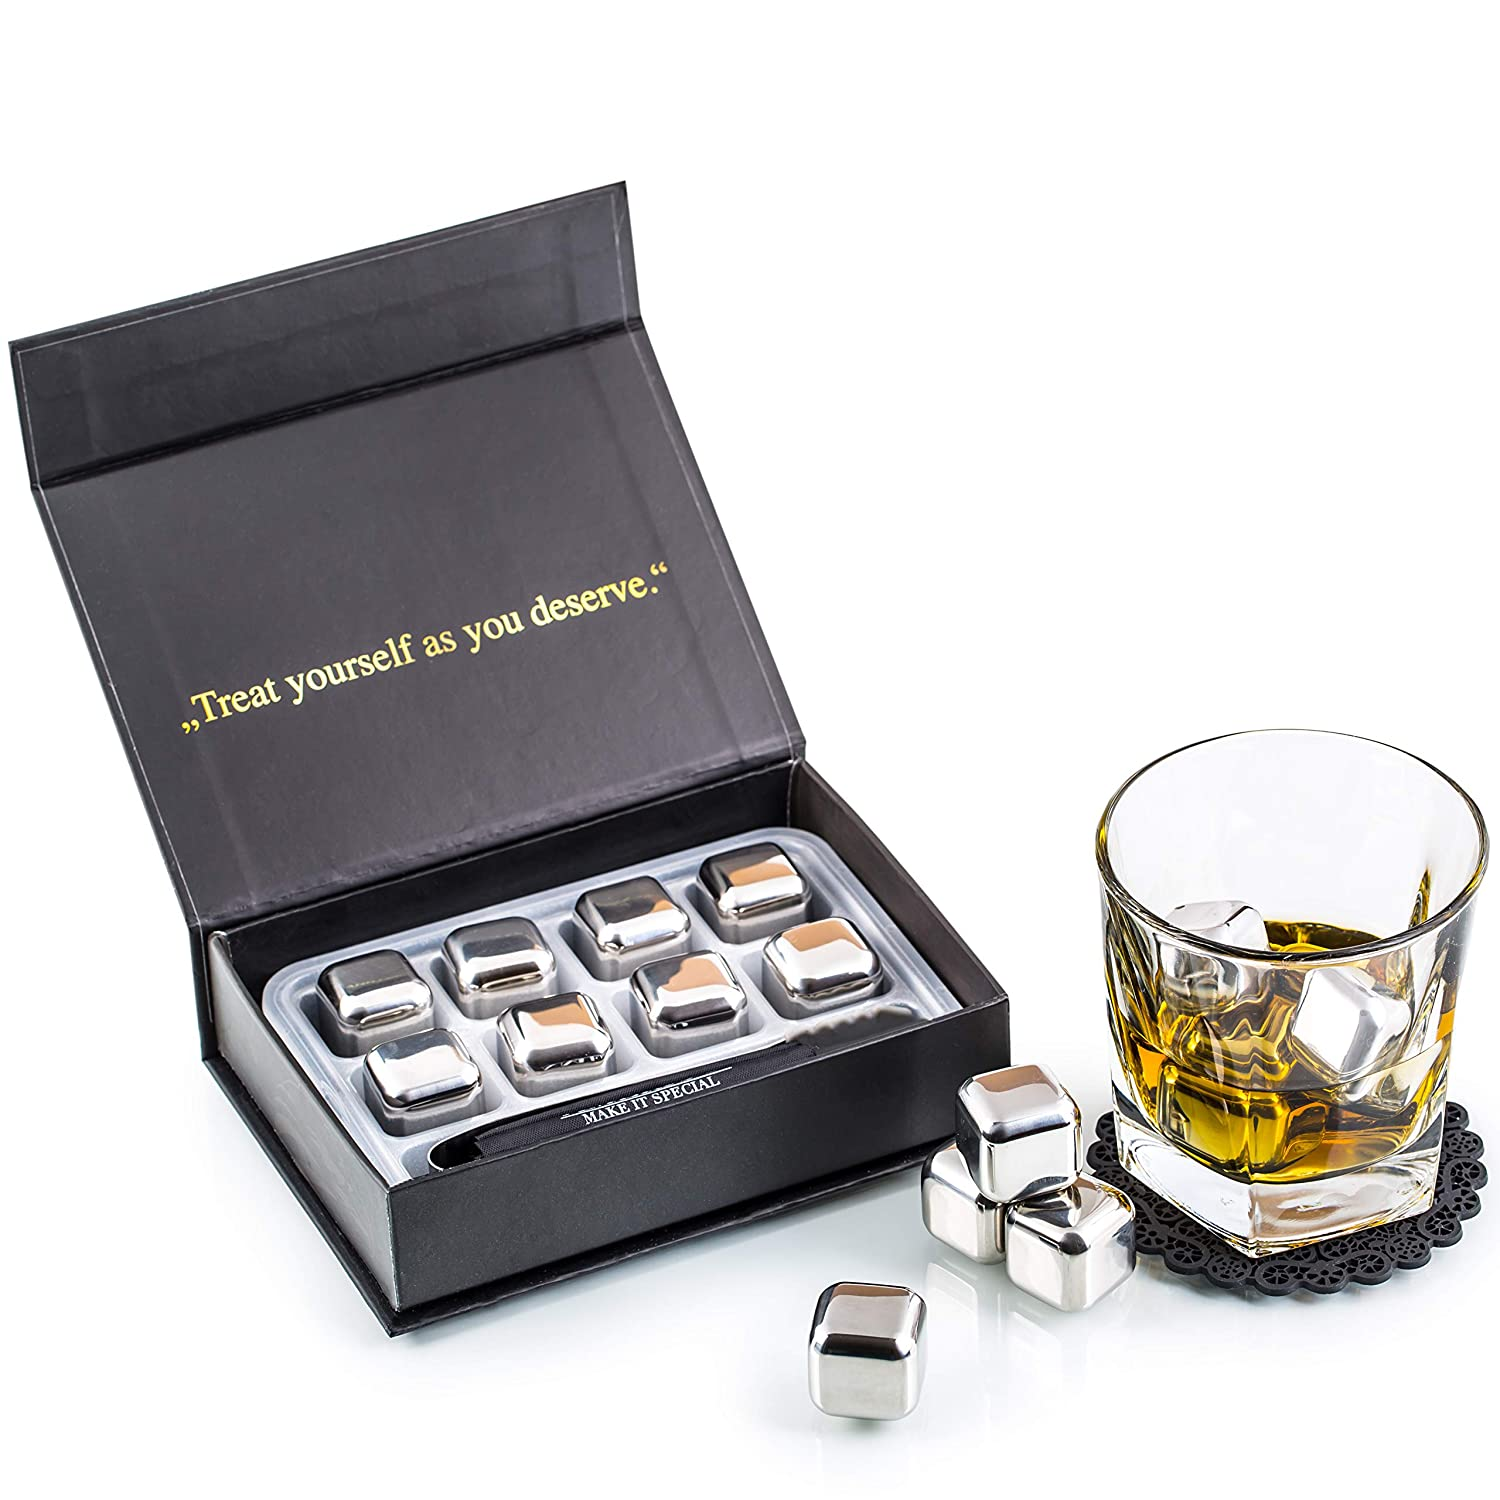 Exclusive Whiskey Stones Gift Set - High Cooling Technology - Reusable Ice Cubes - Stainless Steel Whiskey Ice Cubes - Whiskey Rocks - Whiskey Gifts for Men - Best Man Gift with Coasters + Ice Tongs Amerigo